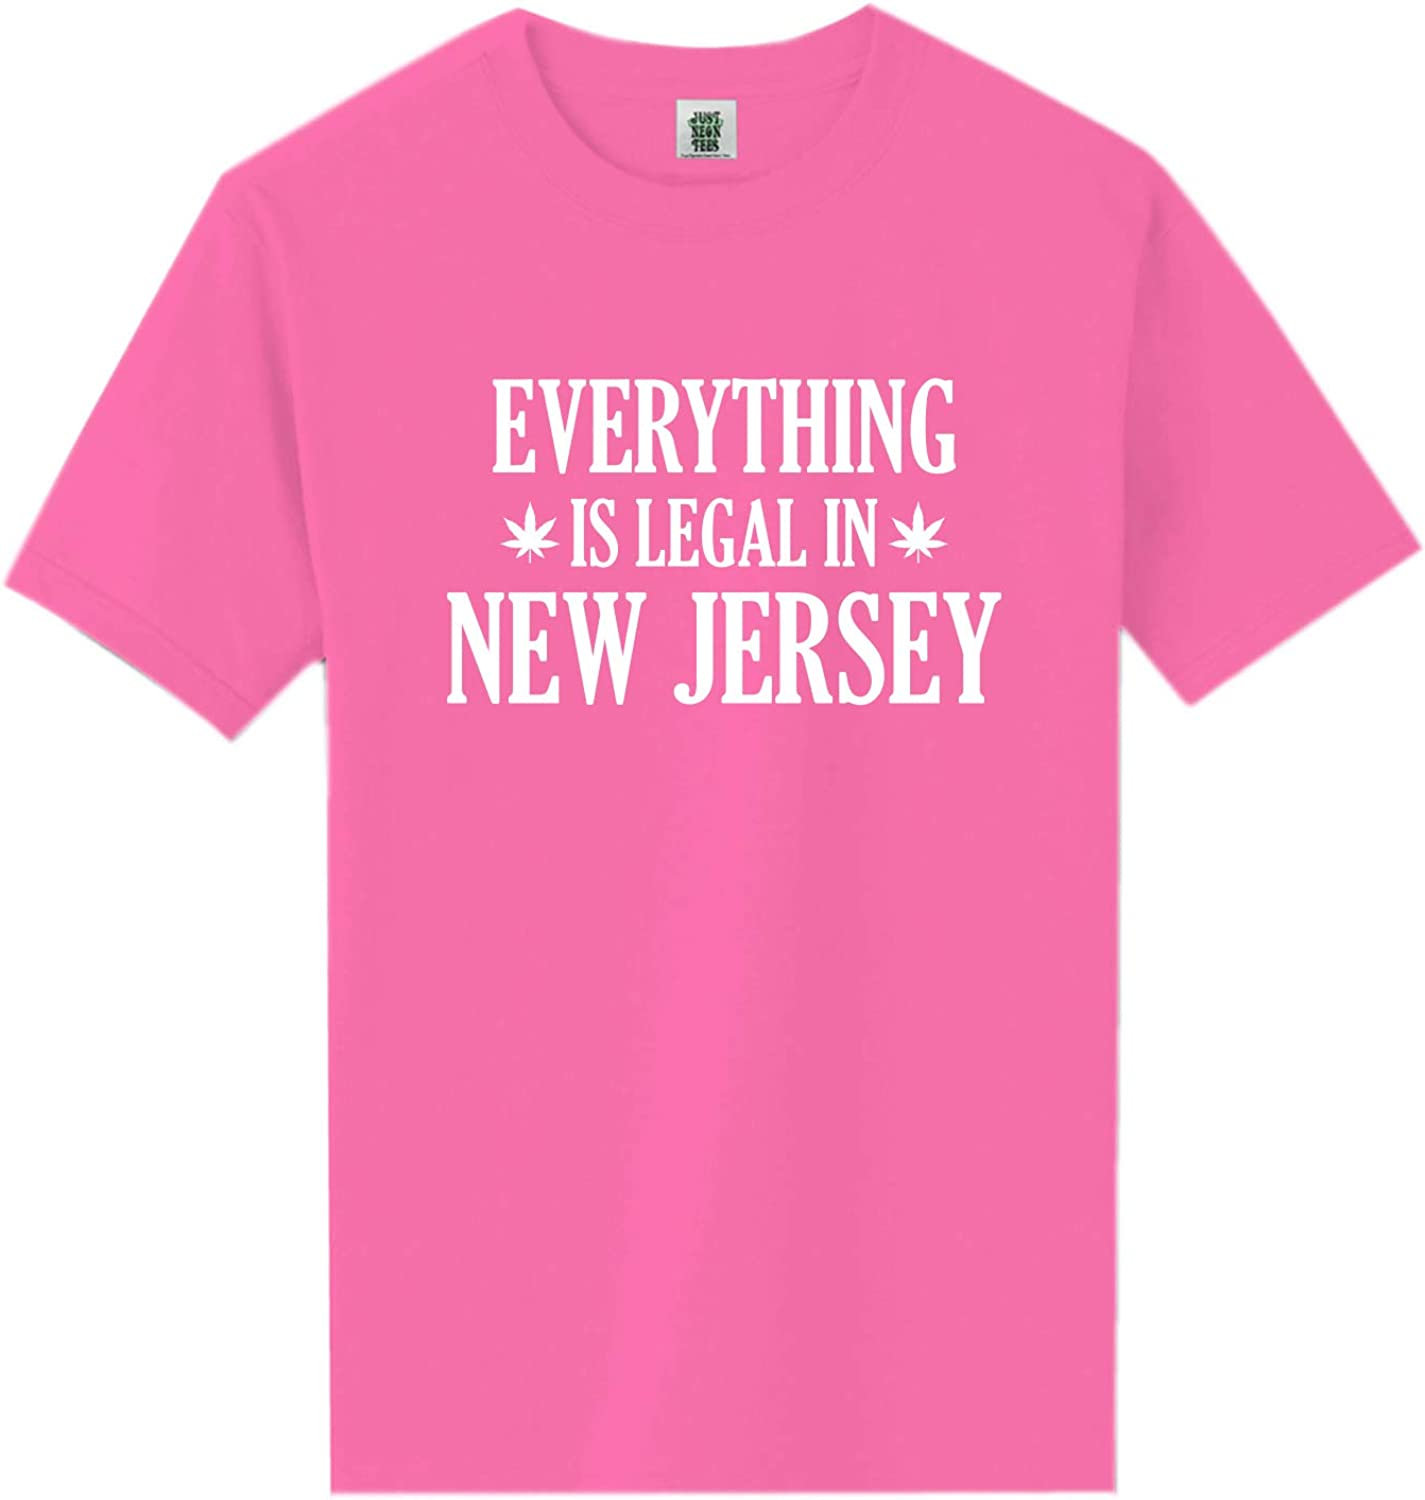 Everything is Legal in New Jersey Neon Pink Short Sleeve T-Shirt - XX-Large